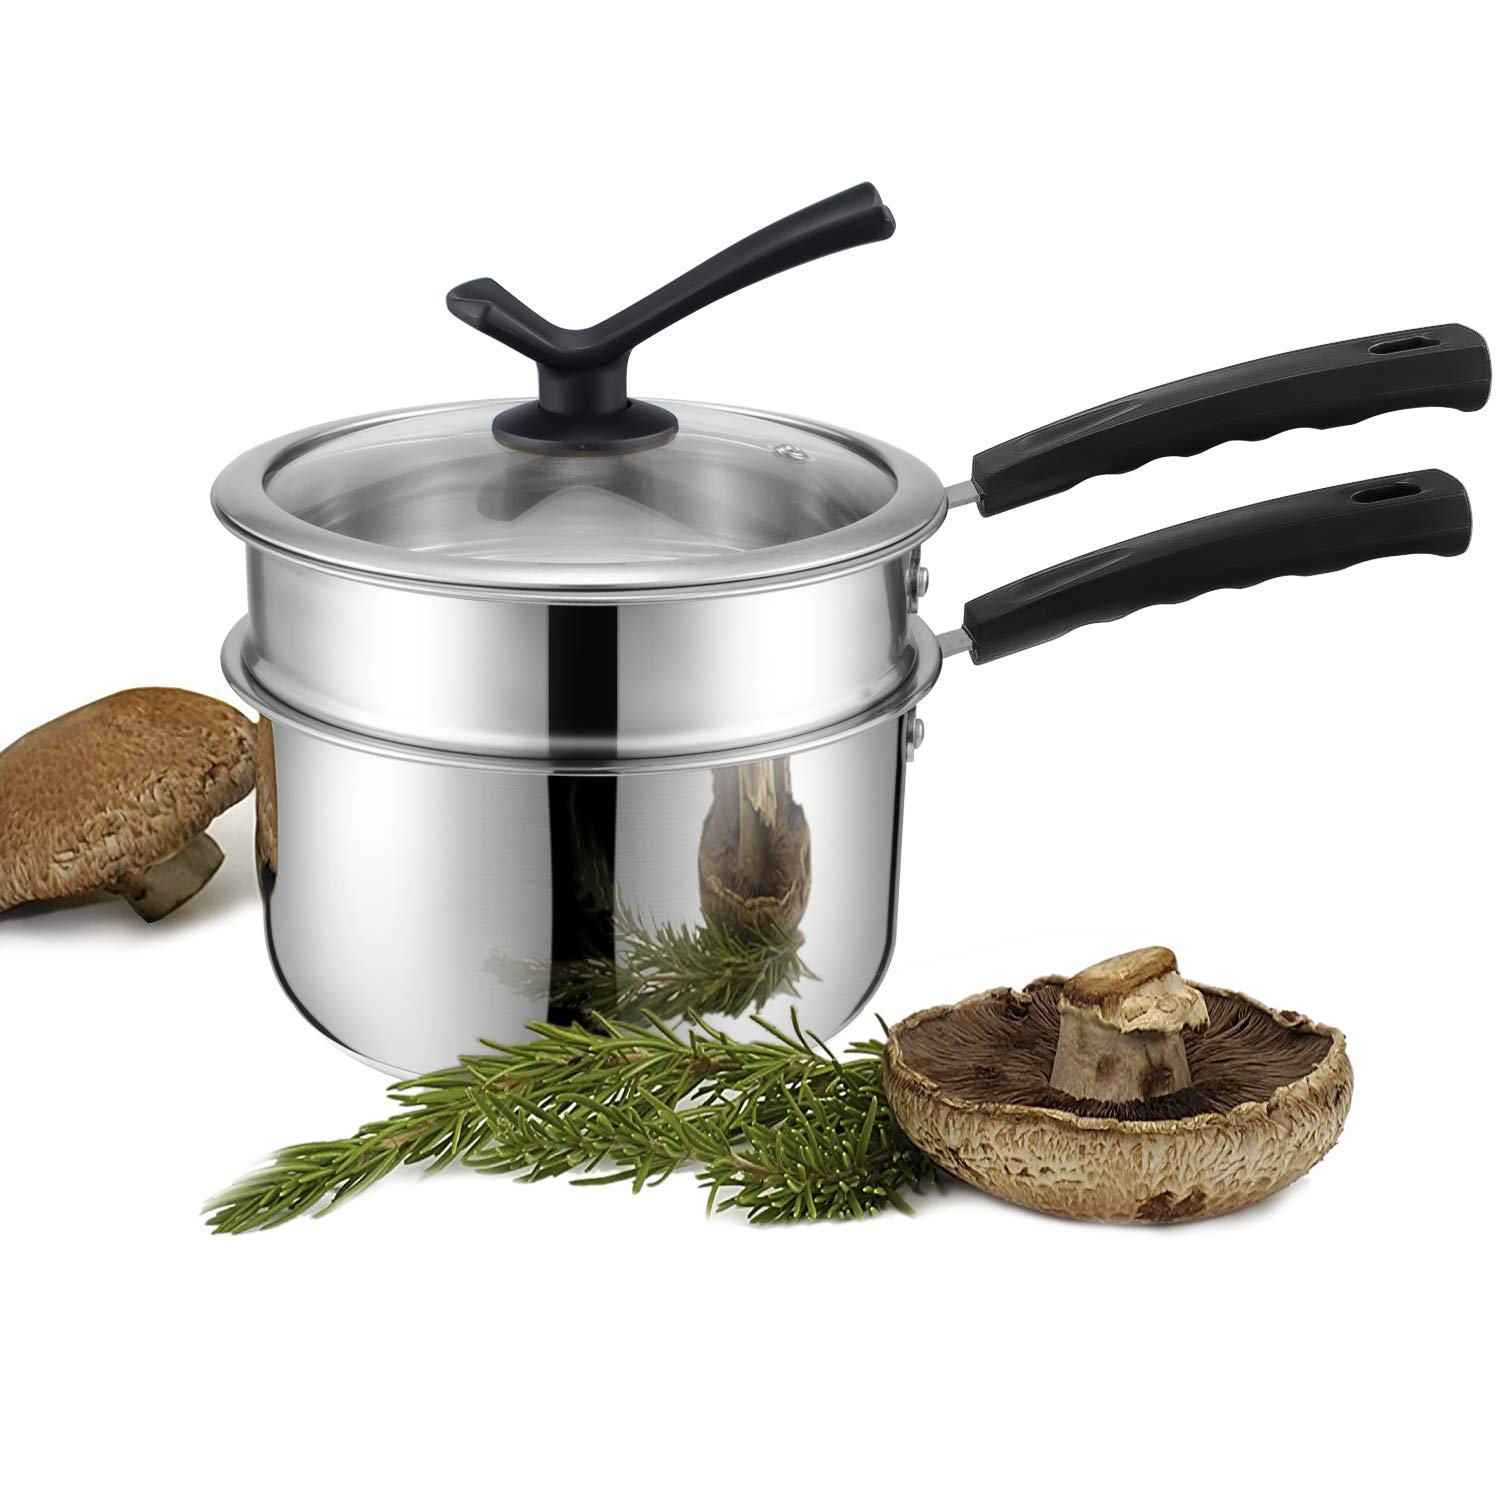 JKsmart Double Boilers&Classic Stainless Steel Non-Stick Saucepan,Melting Pot for Butter,Chocolate,Cheese,Caramel and Bonus with Tempered Glass Lid